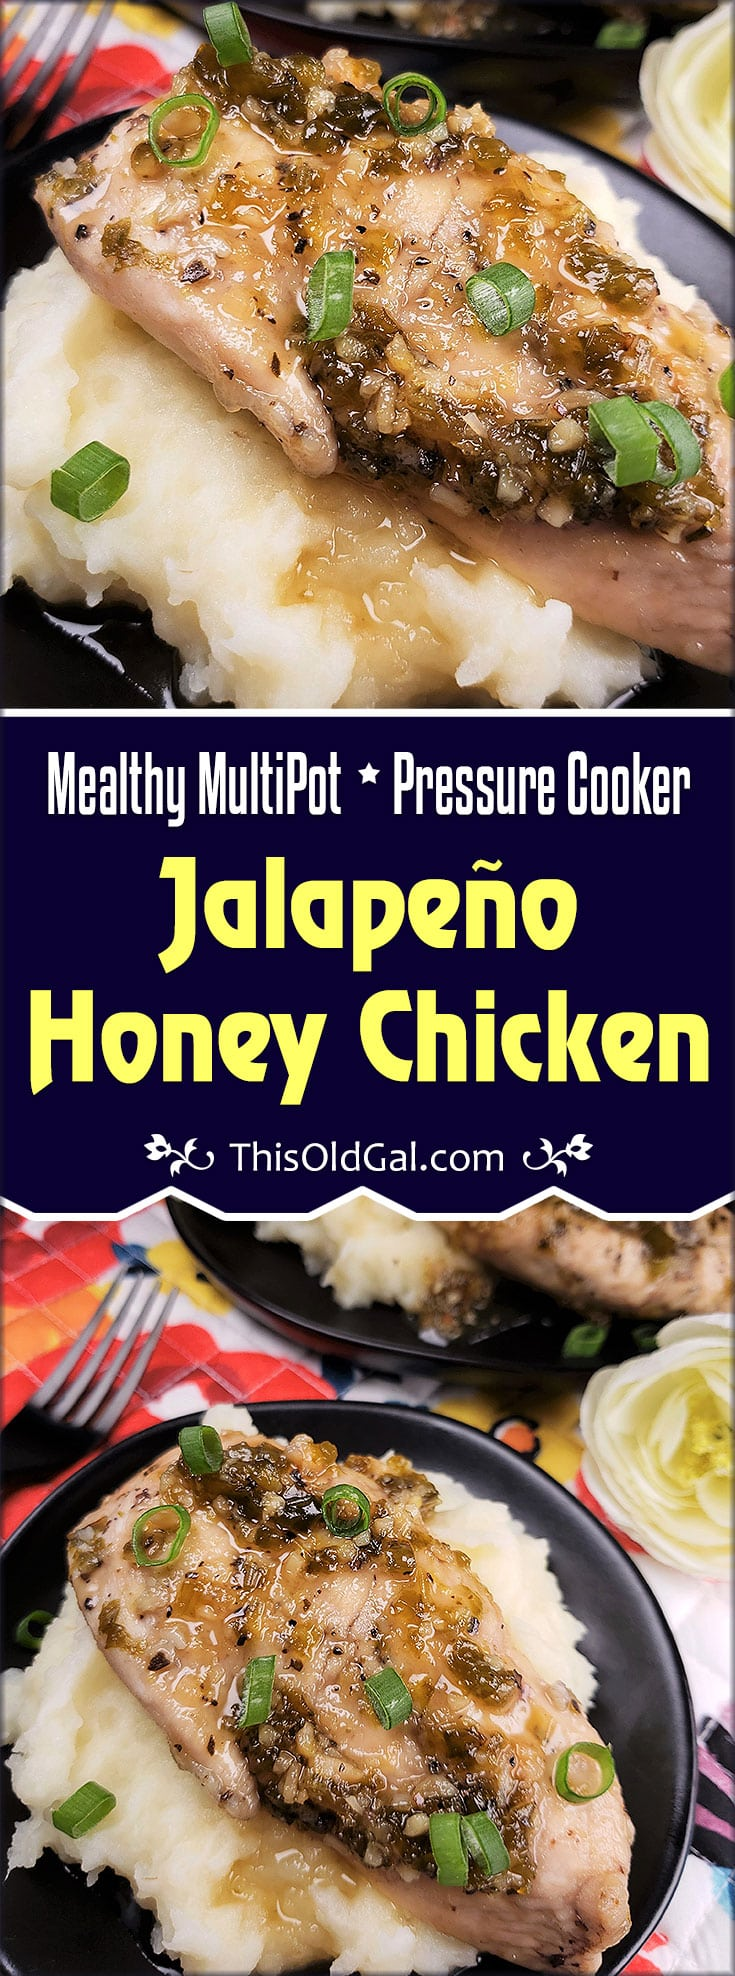 Pressure Cooker Jalapeno Hone Chicken and Mashed Potatoes